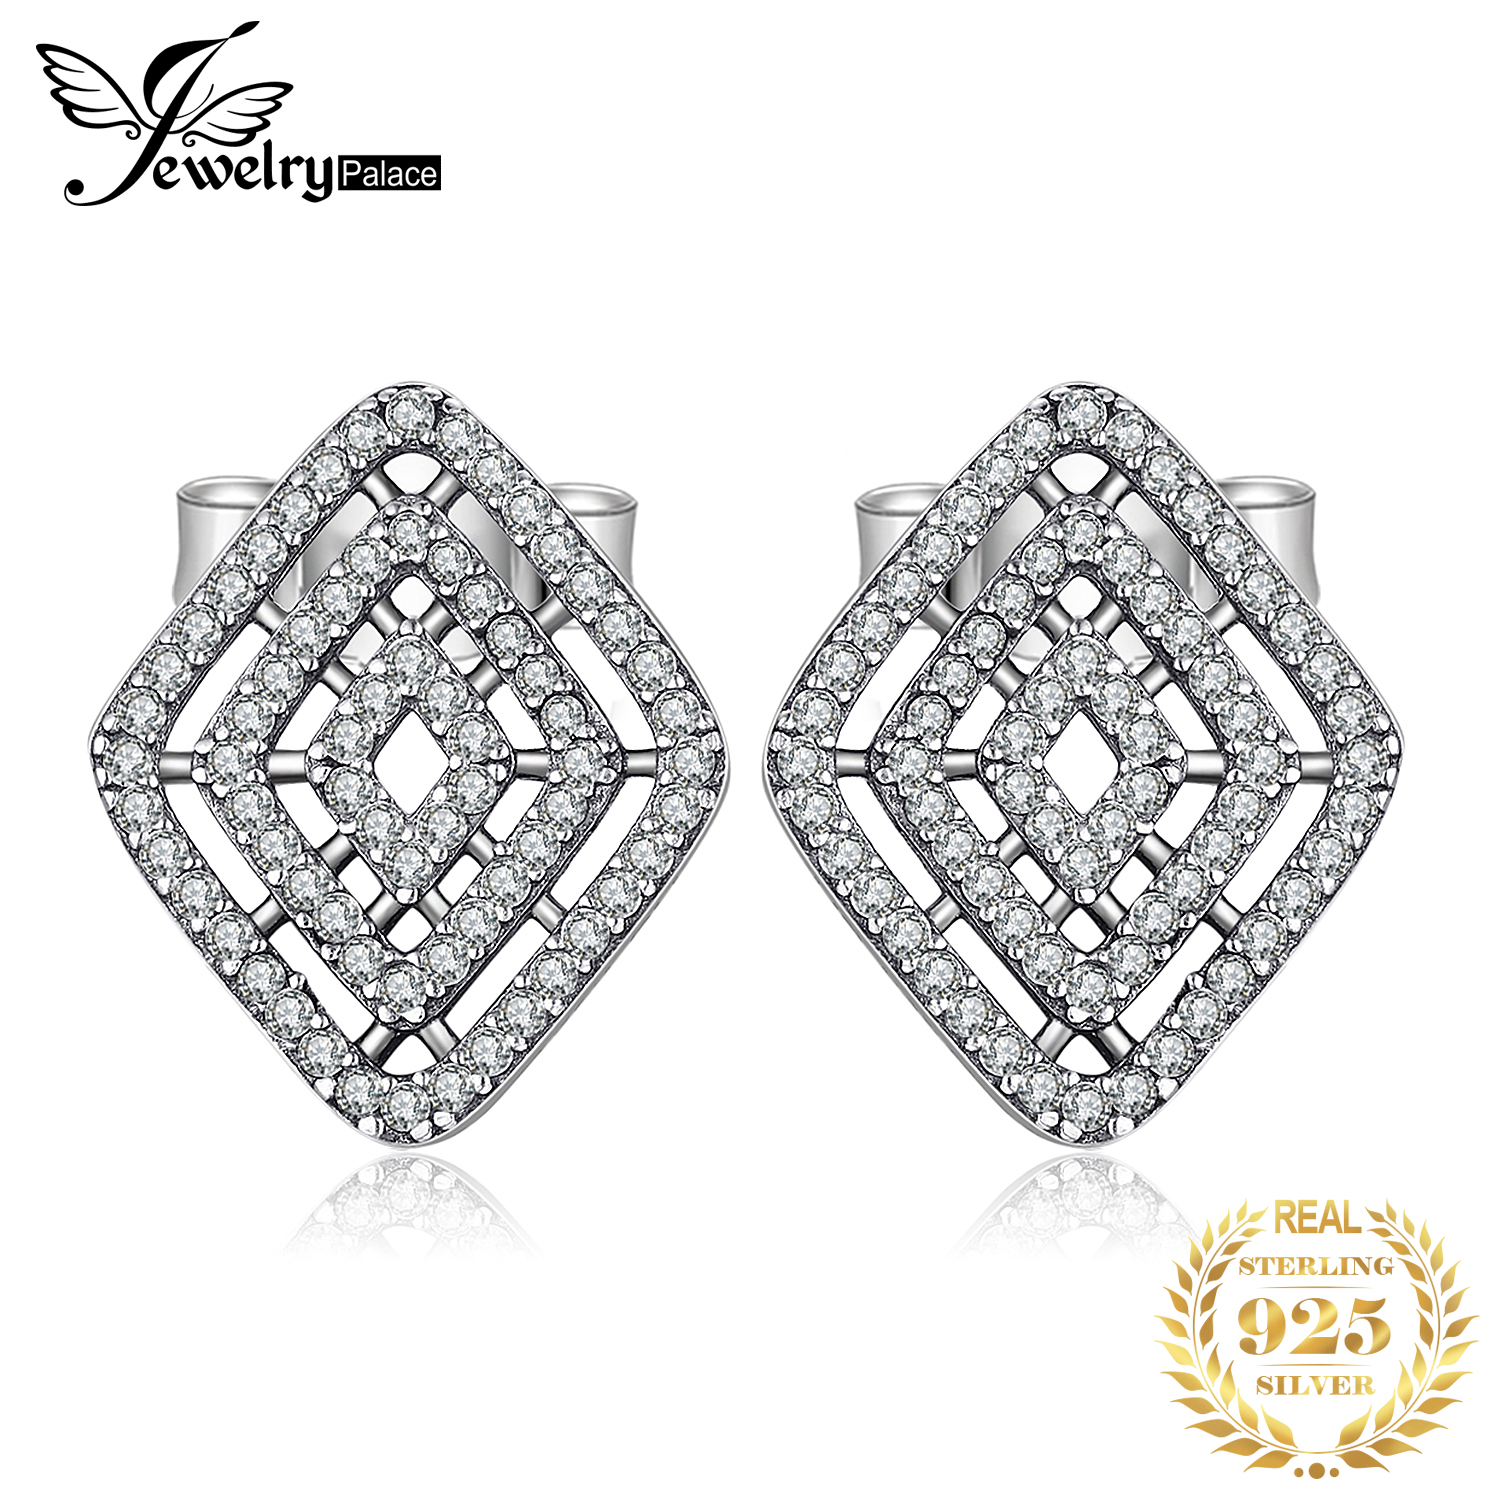 Jewelrypalace Earrings 925-Sterling-Silver Butterfly Cubic-Zirconia Fashion Geometrical-Lines